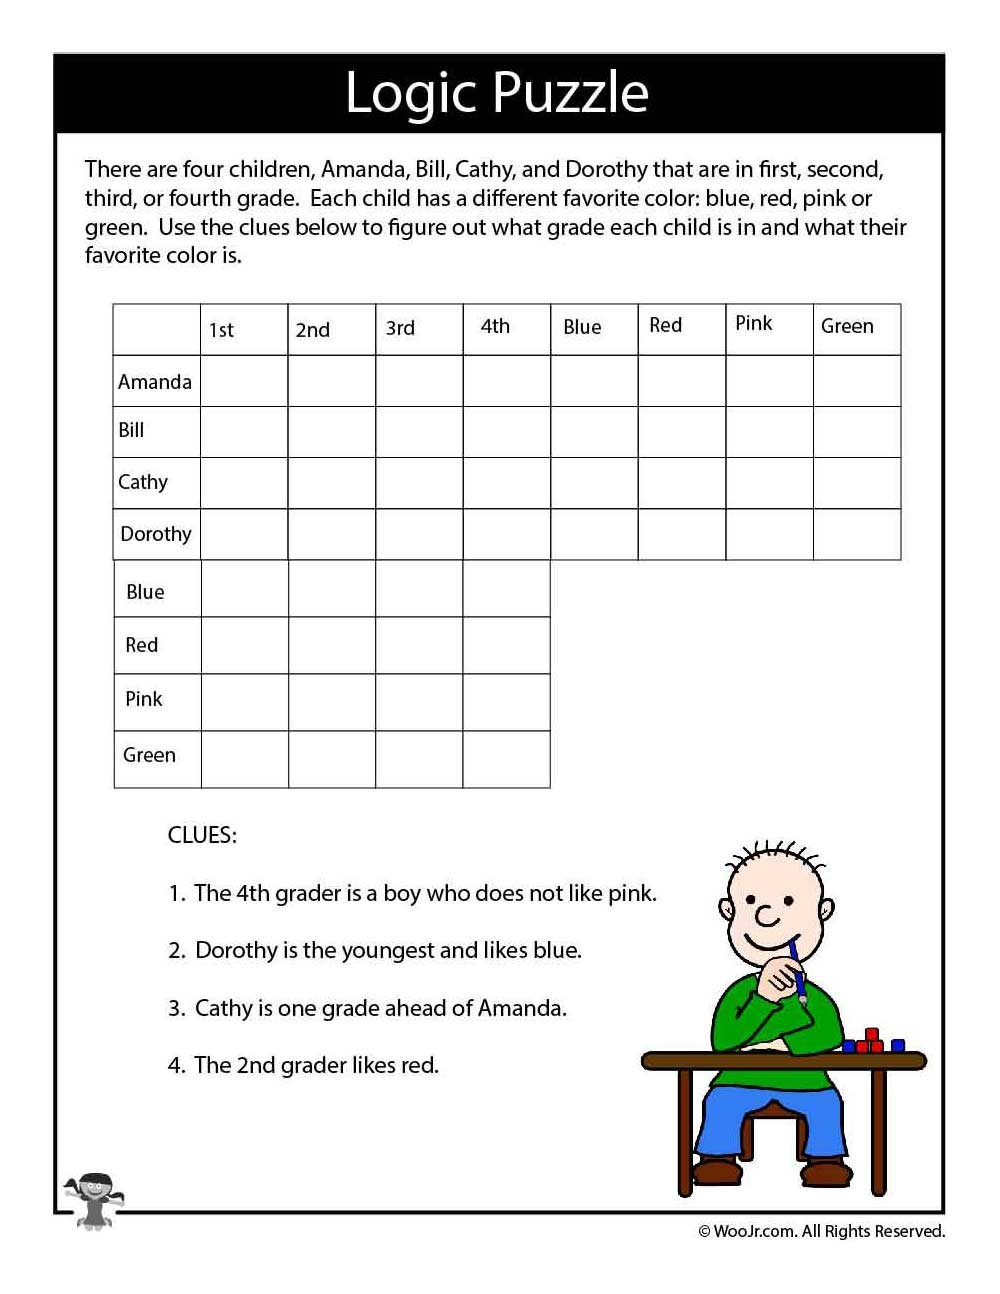 Slobbery image with regard to logic puzzles for kids printable